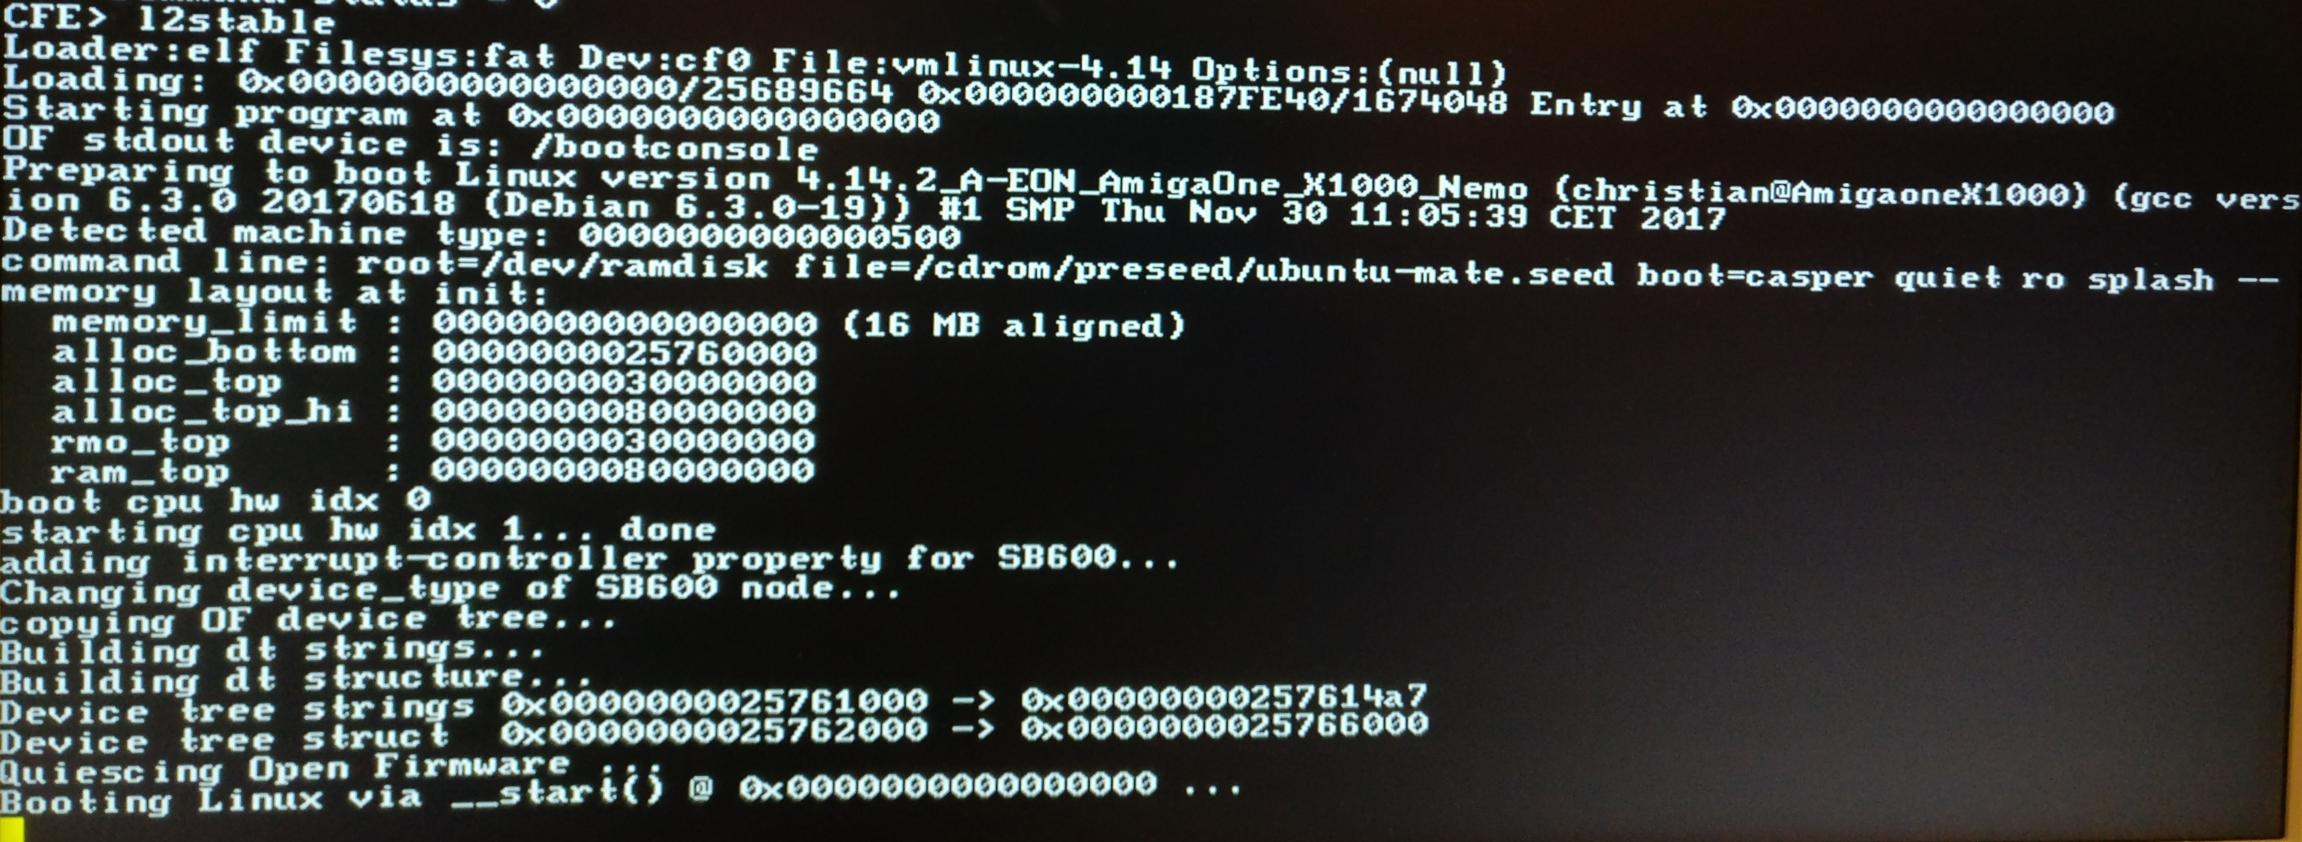 Error-Linux-Boot7-stable.jpg